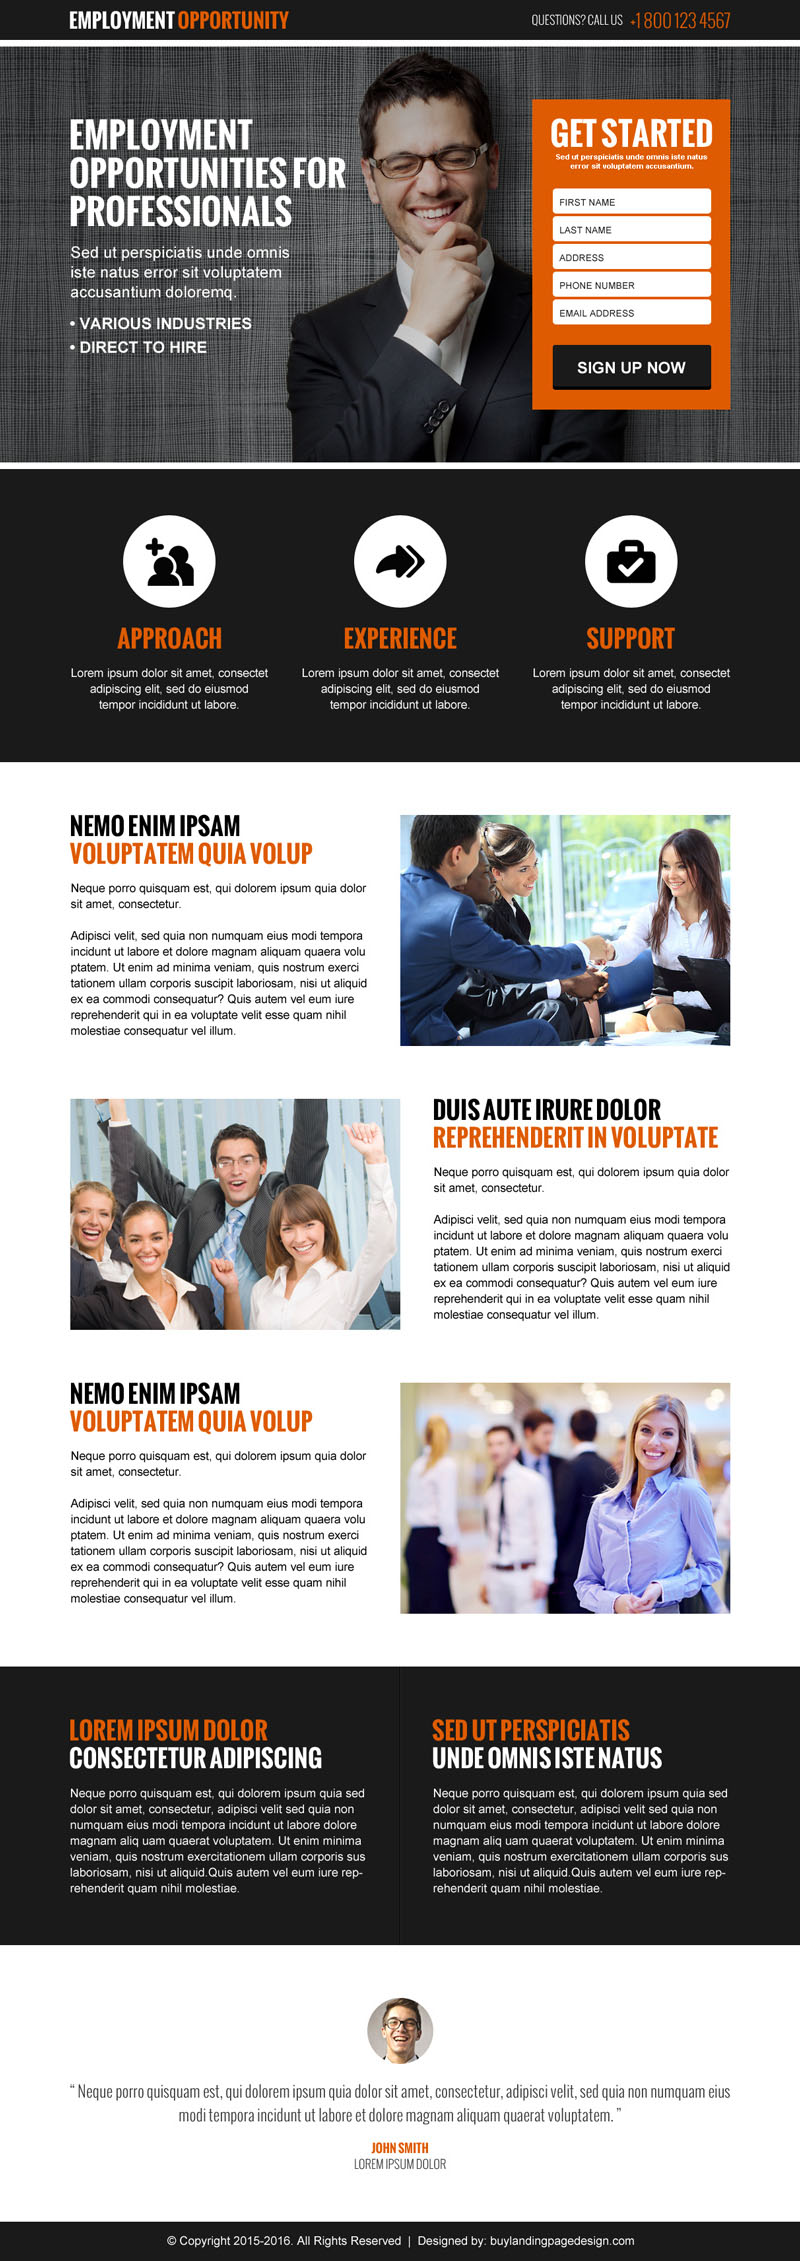 employment-opportunity-lead-generation-landing-page-design-template-001